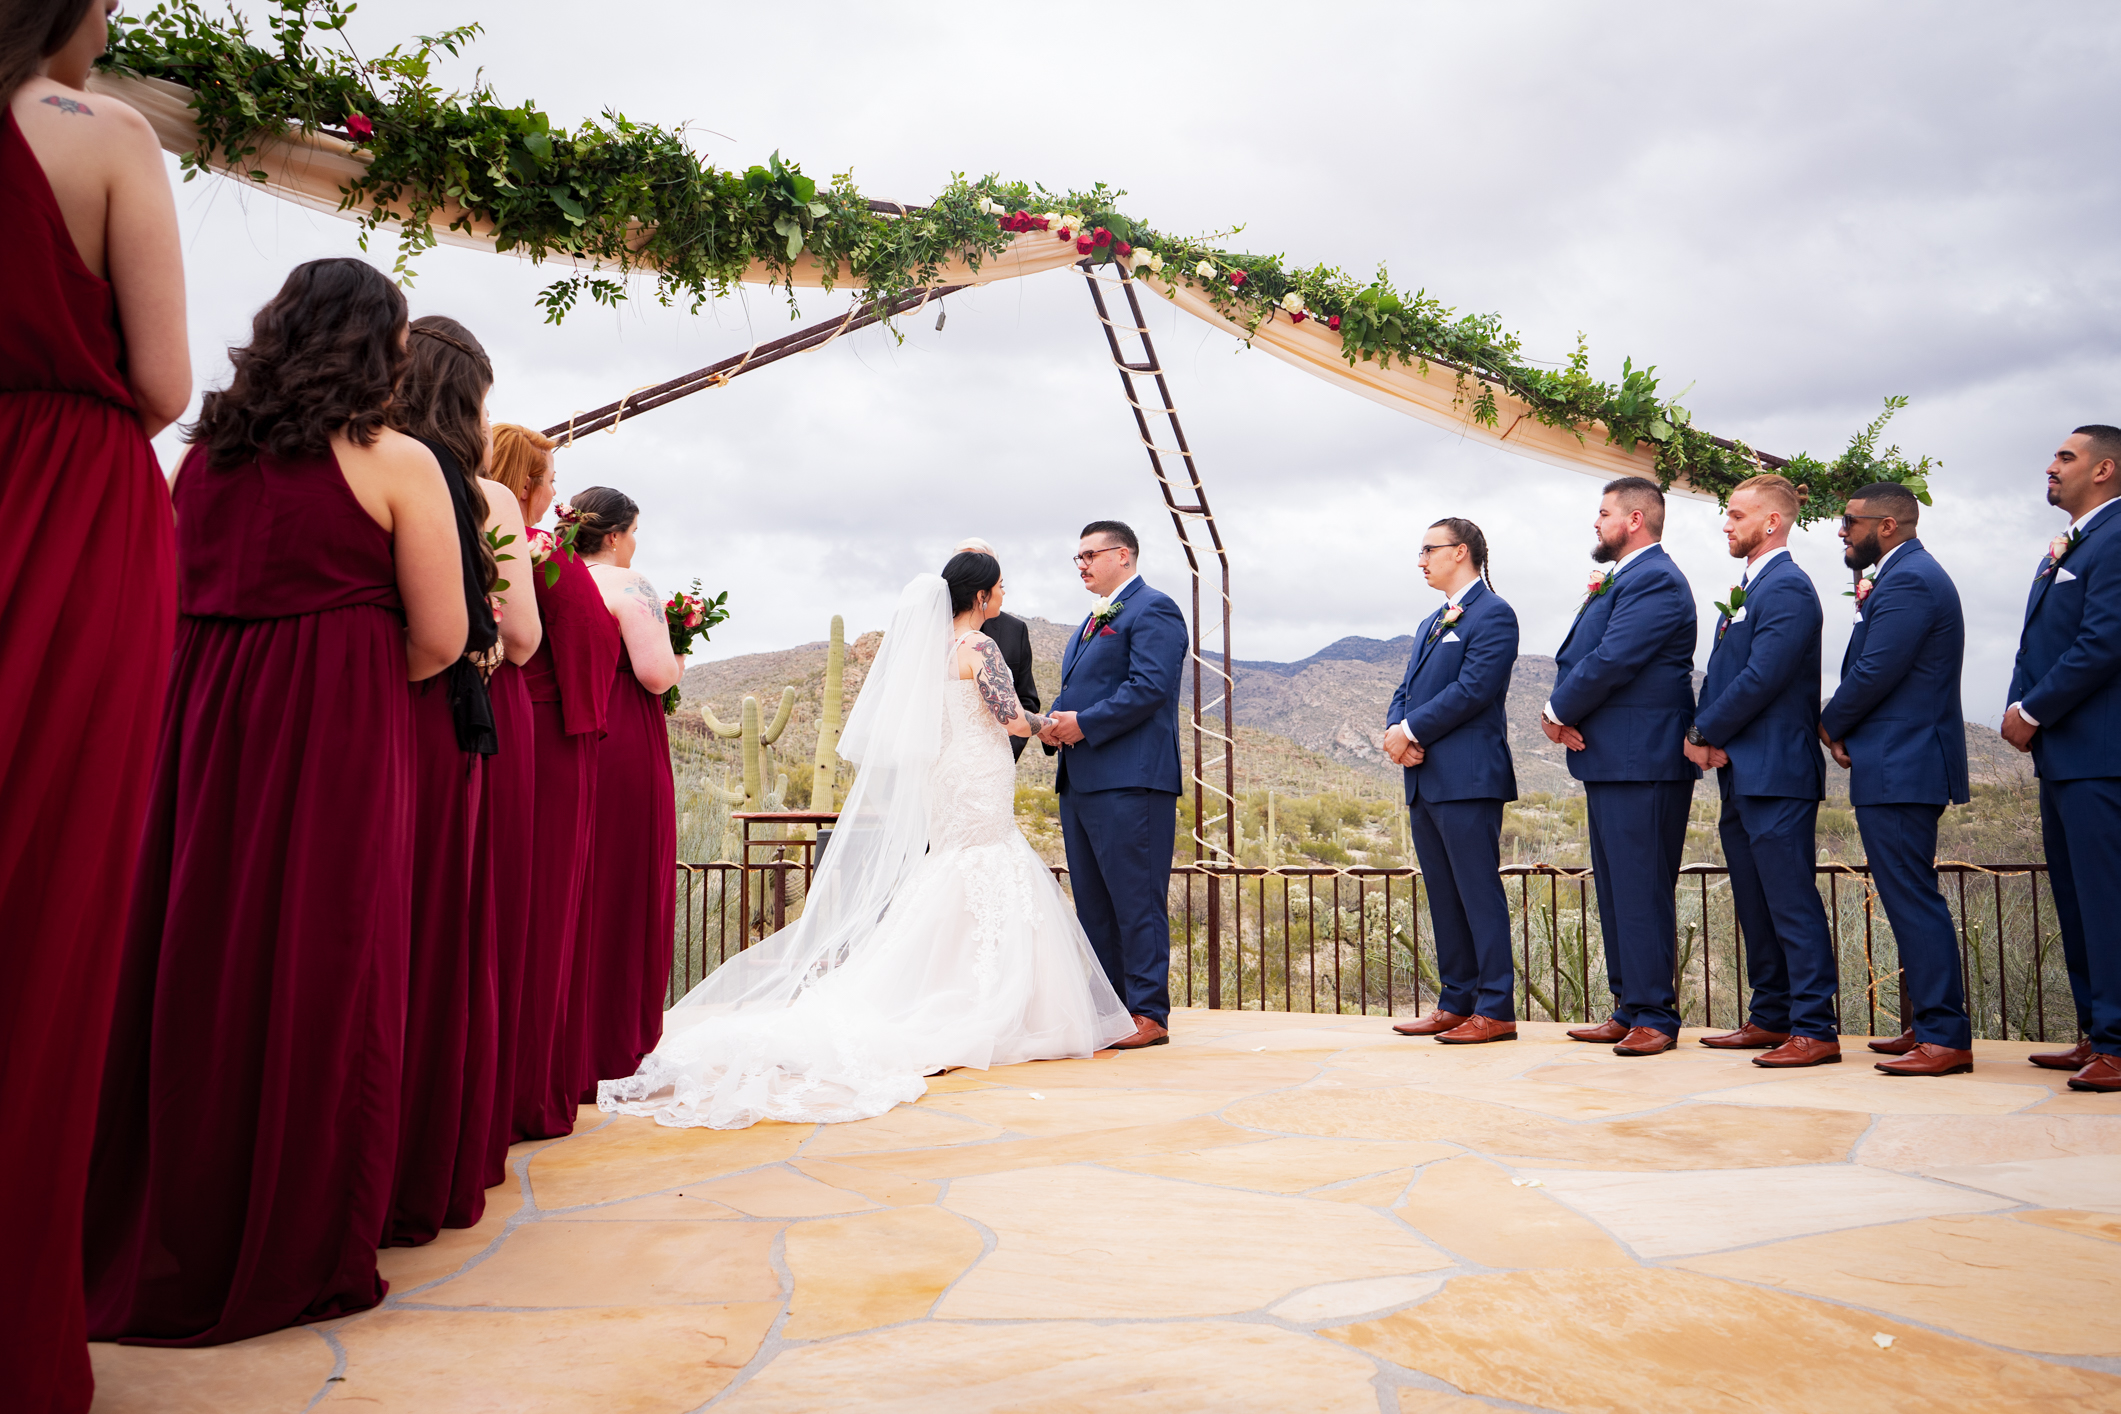 Sean_Marin Wedding_02_22_2019-132.jpg